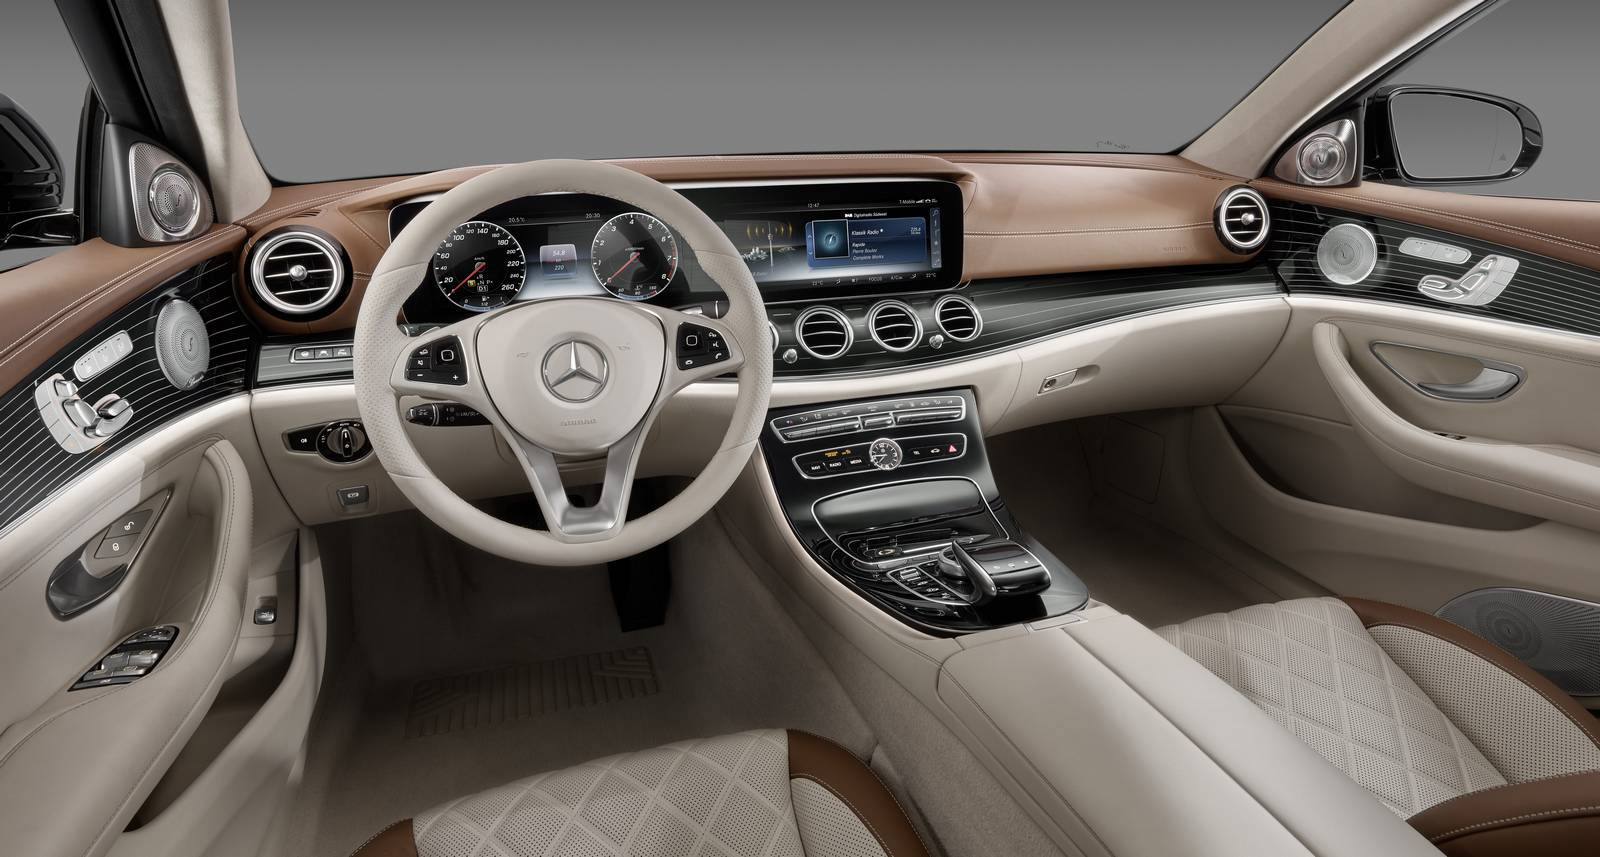 2017 mercedes benz e class exterior design revealed gtspirit. Black Bedroom Furniture Sets. Home Design Ideas